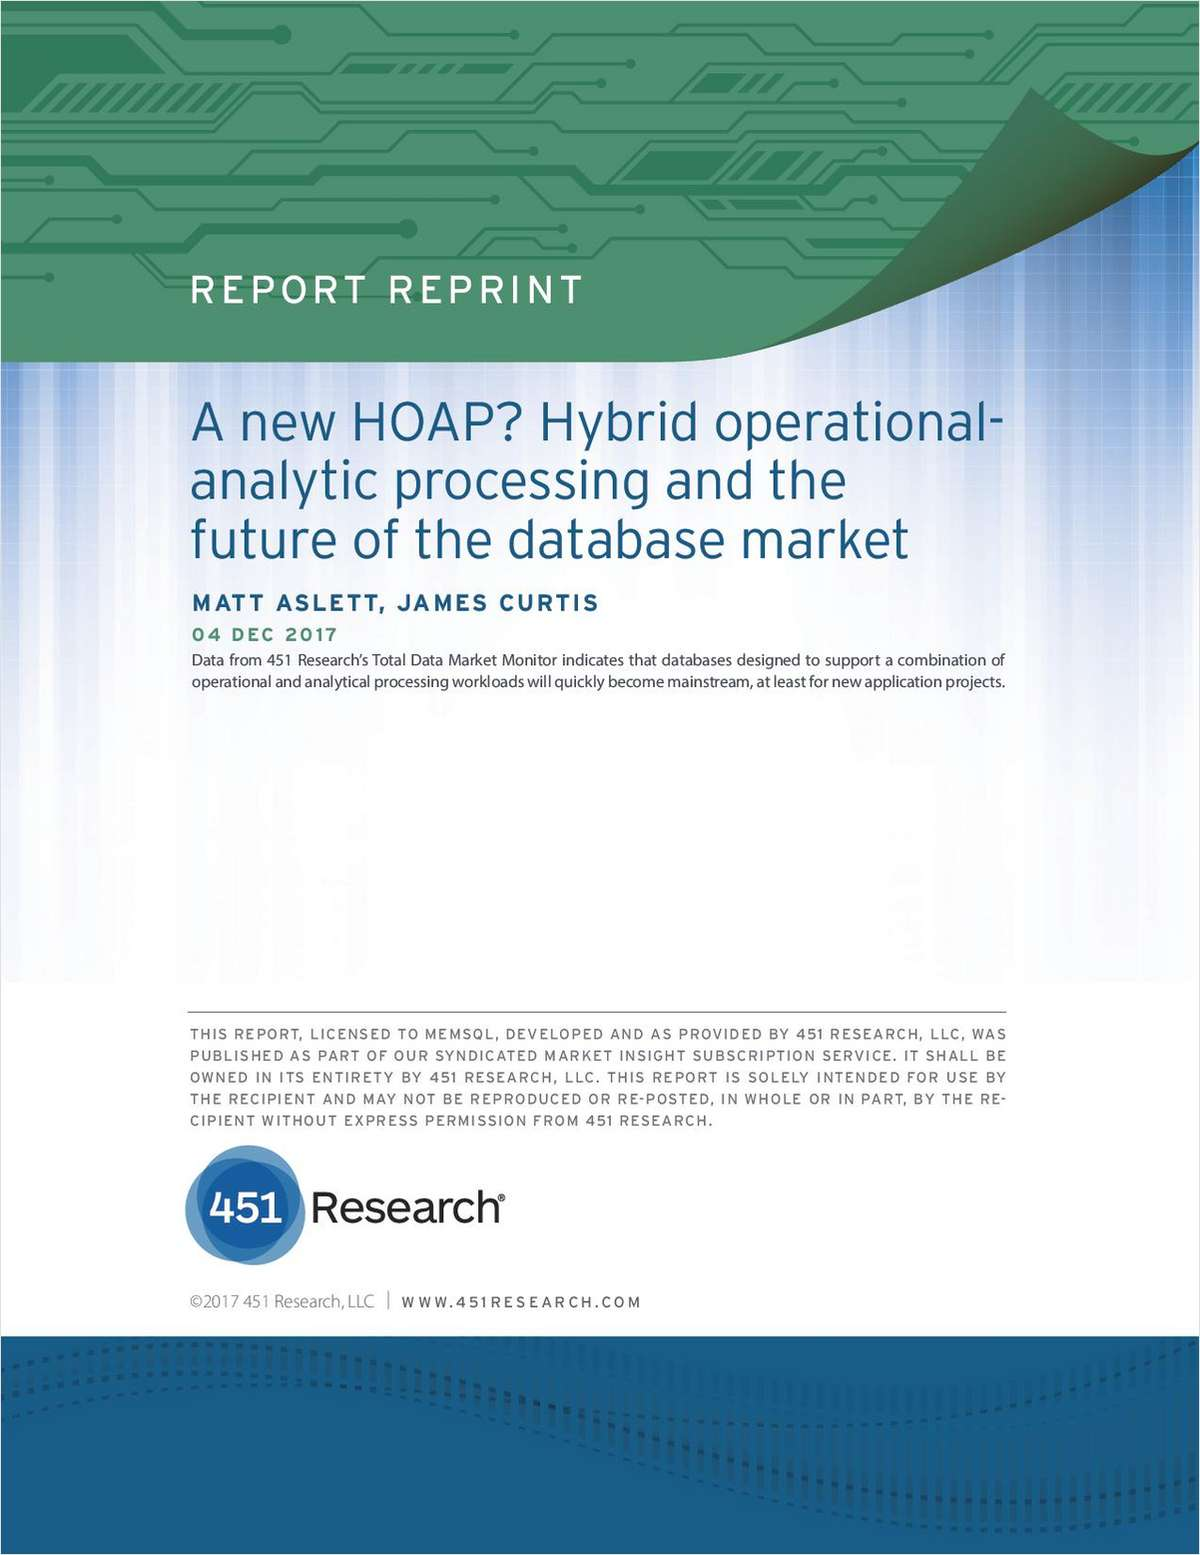 A New HOAP? Hybrid Operational Analytic Processing and the Future of the Database Market